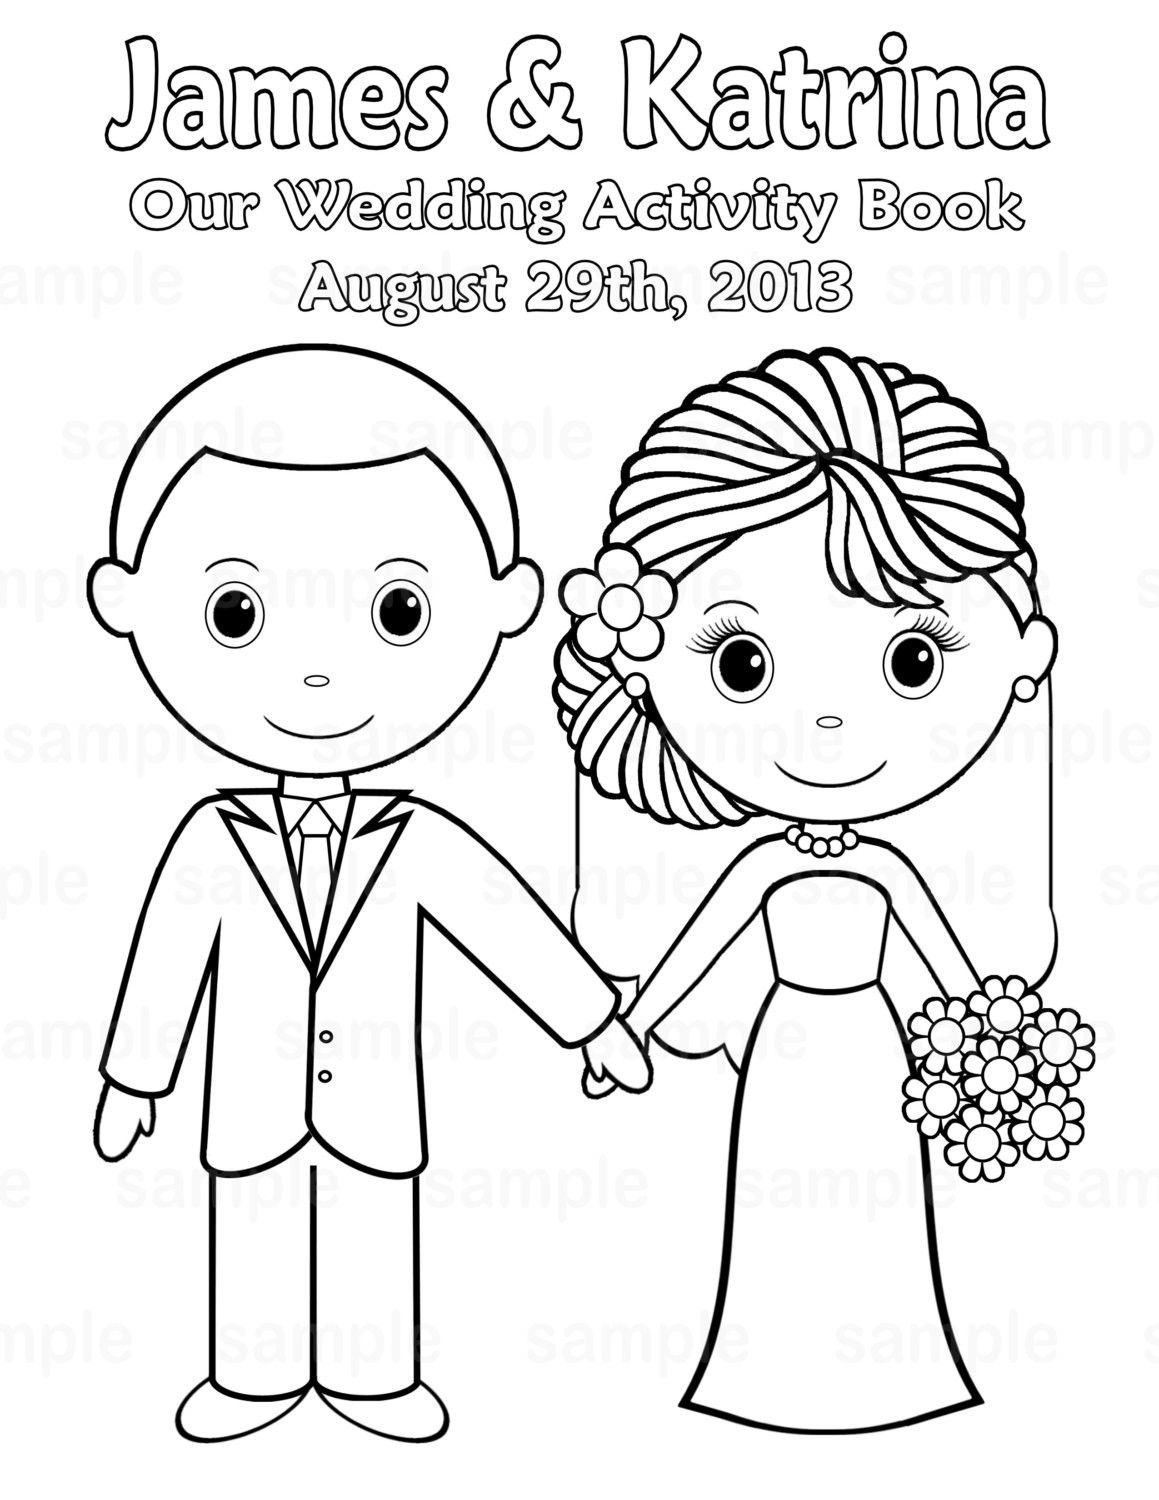 free printable wedding coloring pages free printable wedding coloring book for kids free download - Wedding Coloring Books For Children